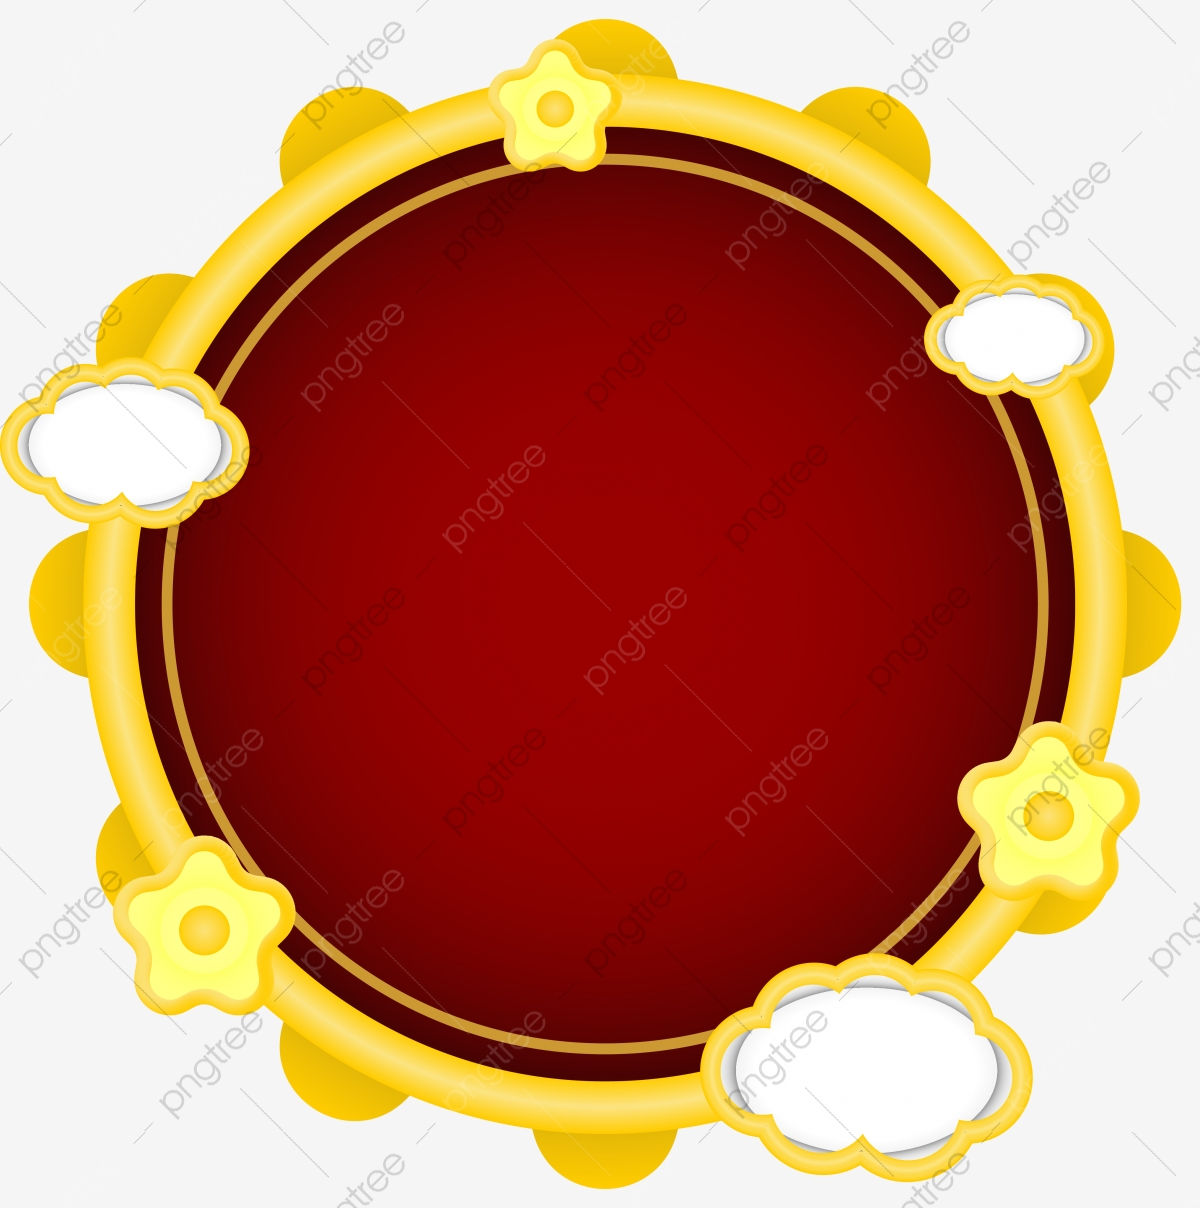 Red Gold Golden Border Round Mirror Transparent Png Color Free Transparent Png And Vector With Transparent Background For Free Download